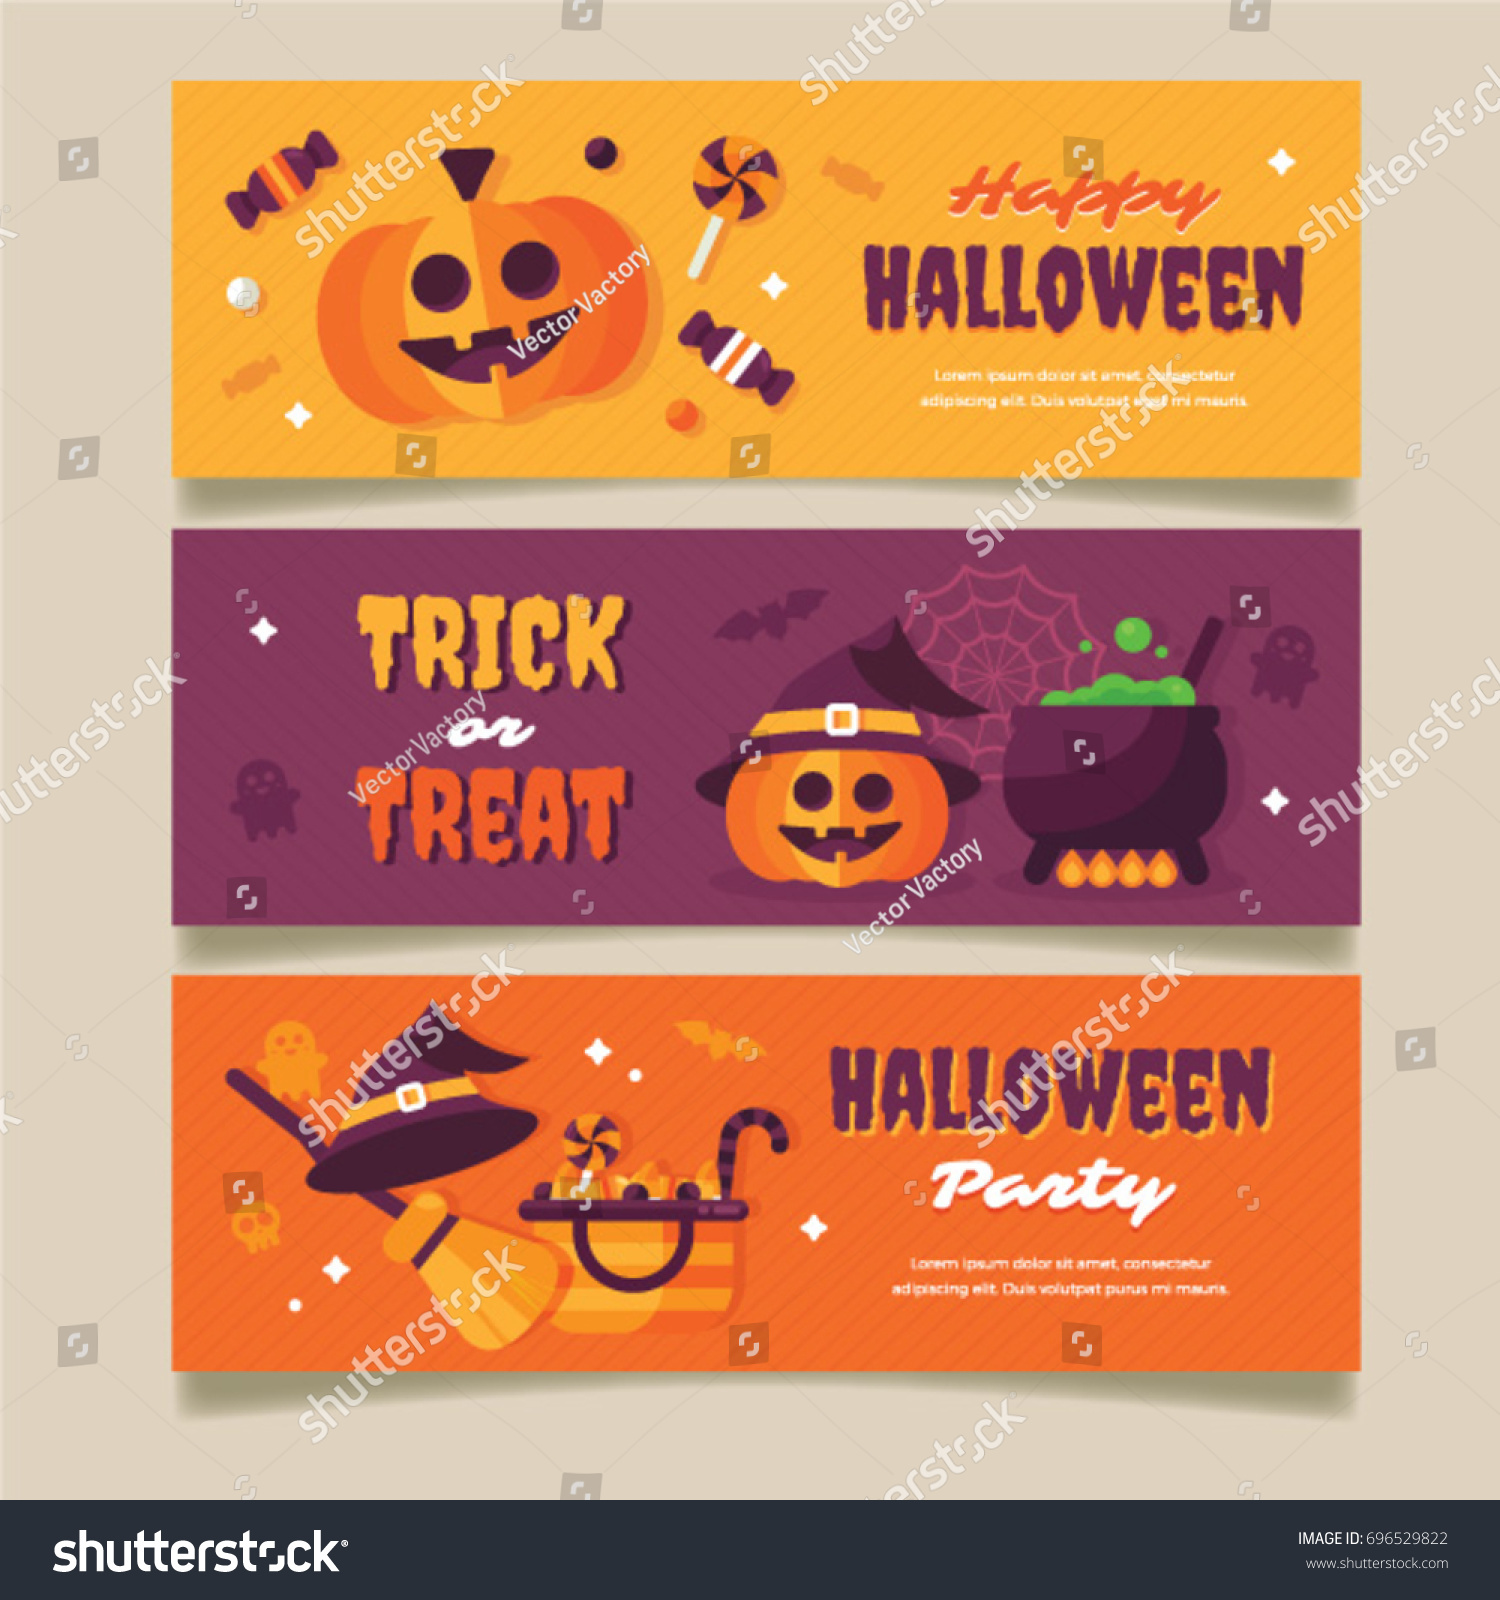 halloween party poster, flyer, web banner design with typography